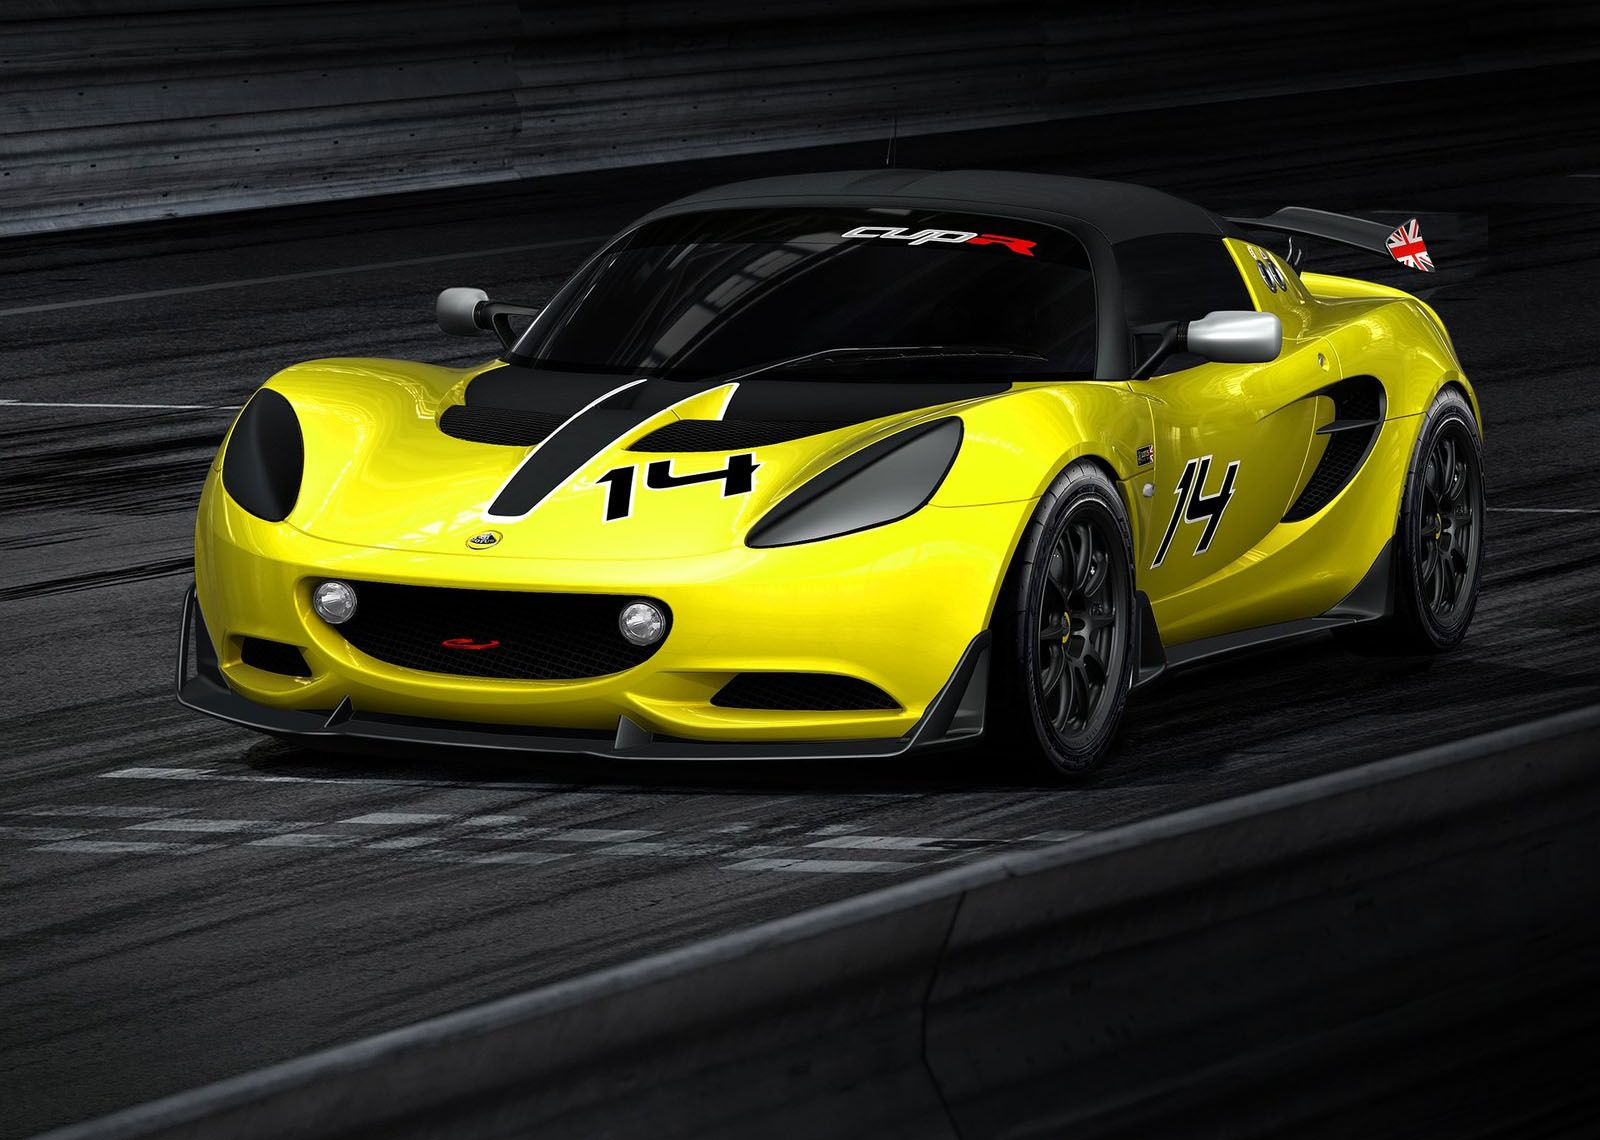 Image for 2014 Lotus Elise S Cup R Front Angle Cars Lotus